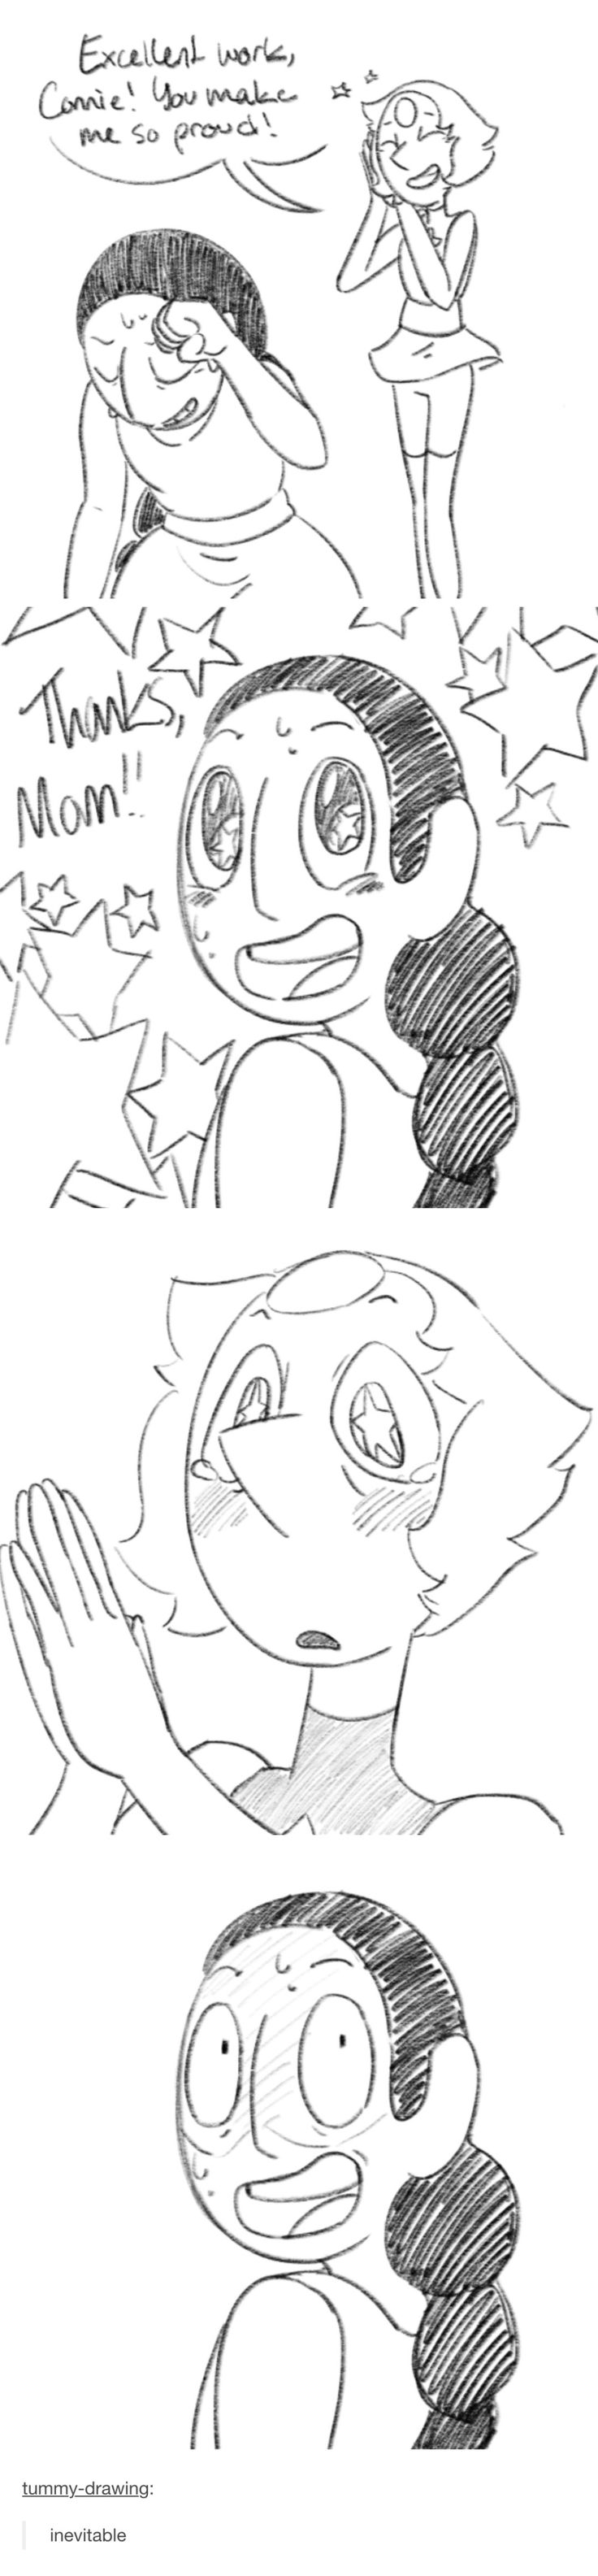 """Connie saying """"Thanks MOM"""" to pearl, she just wants some love !!!"""